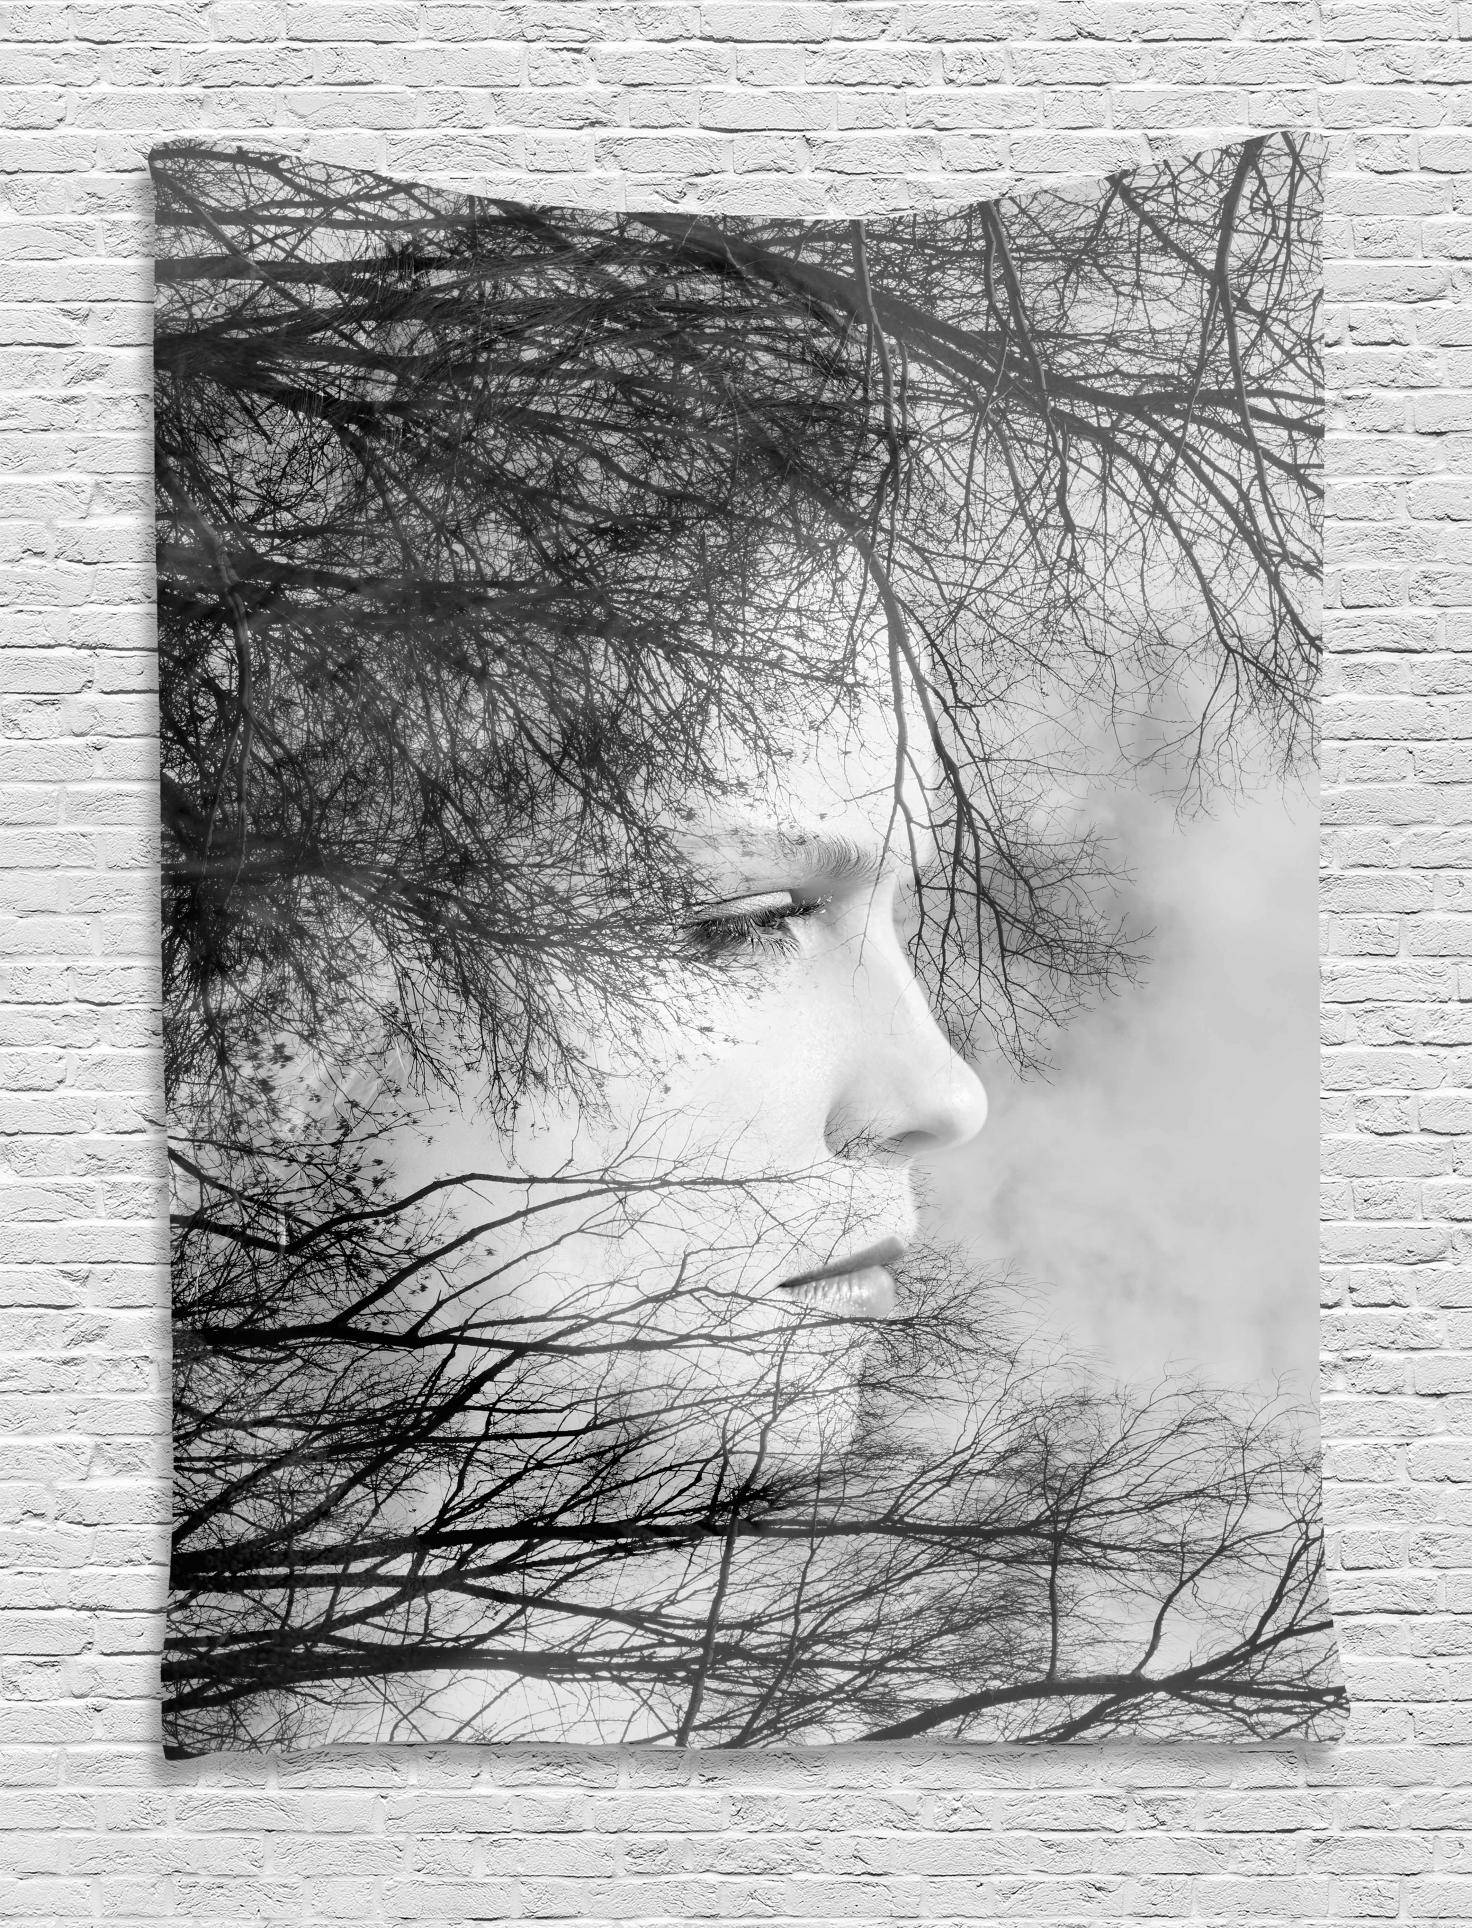 Black And White Artwork For Bedroom Black And White Tapestry Woman Face Among Tree Branches Double Exposure Effect Artistic Print Wall Hanging For Bedroom Living Room Dorm Decor Black